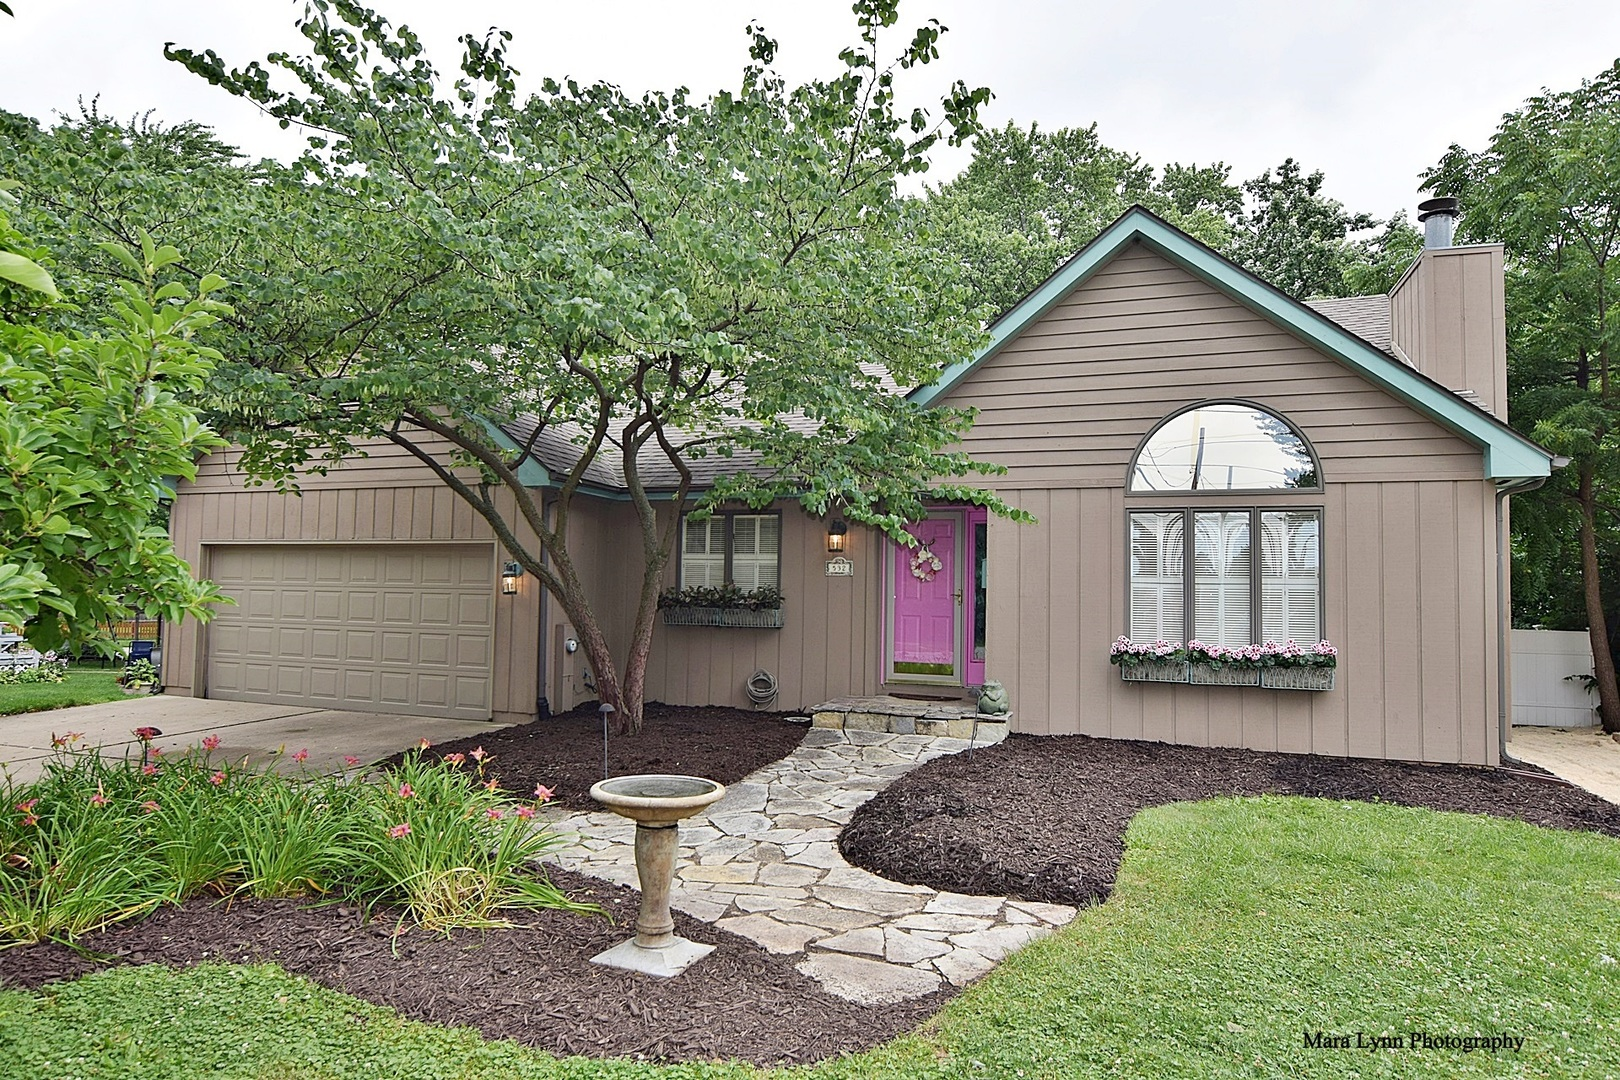 532 Park Street, Batavia in Kane County, IL 60510 Home for Sale